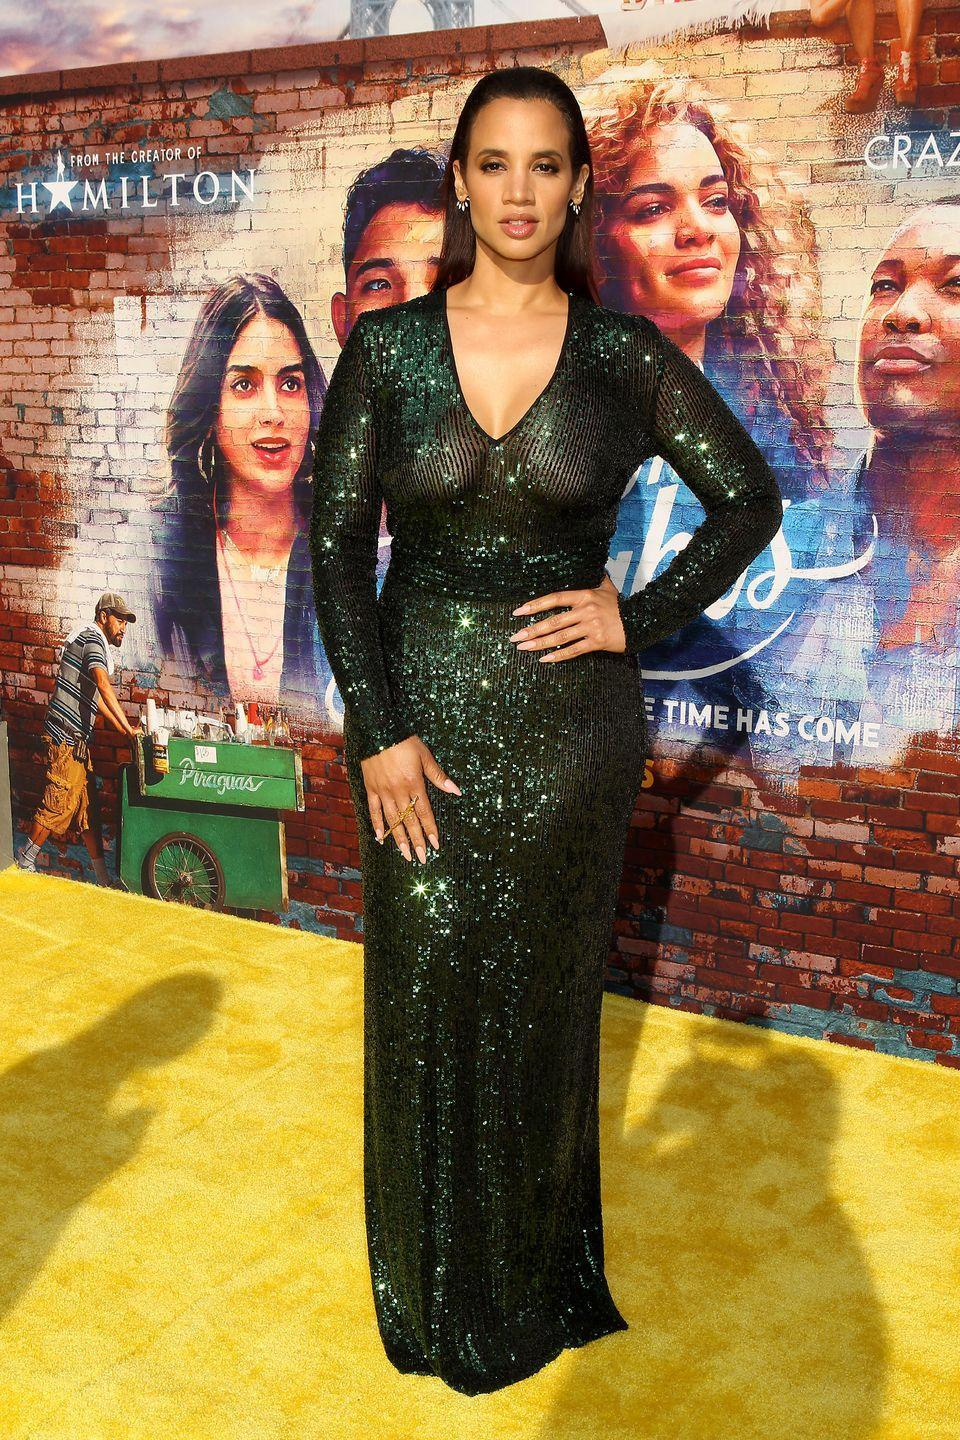 """<p>We were introduced to Dascha Polanco in the Netflix series <em>Orange is the New Black</em>, and subsequently <em>When They See Us</em>. The star continues to be part of important representation stories now with the <em>Heights</em>. She plays Cuca, who is rarely seen in the film without her friends Daniela and Carla—bringing to life a fiery, hilarious trio. """"We're like a really balanced triple threat,"""" she told <em>Vanity Fair</em>. In between projects, keep up with Polanco through her glamorous Instagram page.</p><p><strong>Follow her on Instagram</strong>: @sheisdash</p>"""